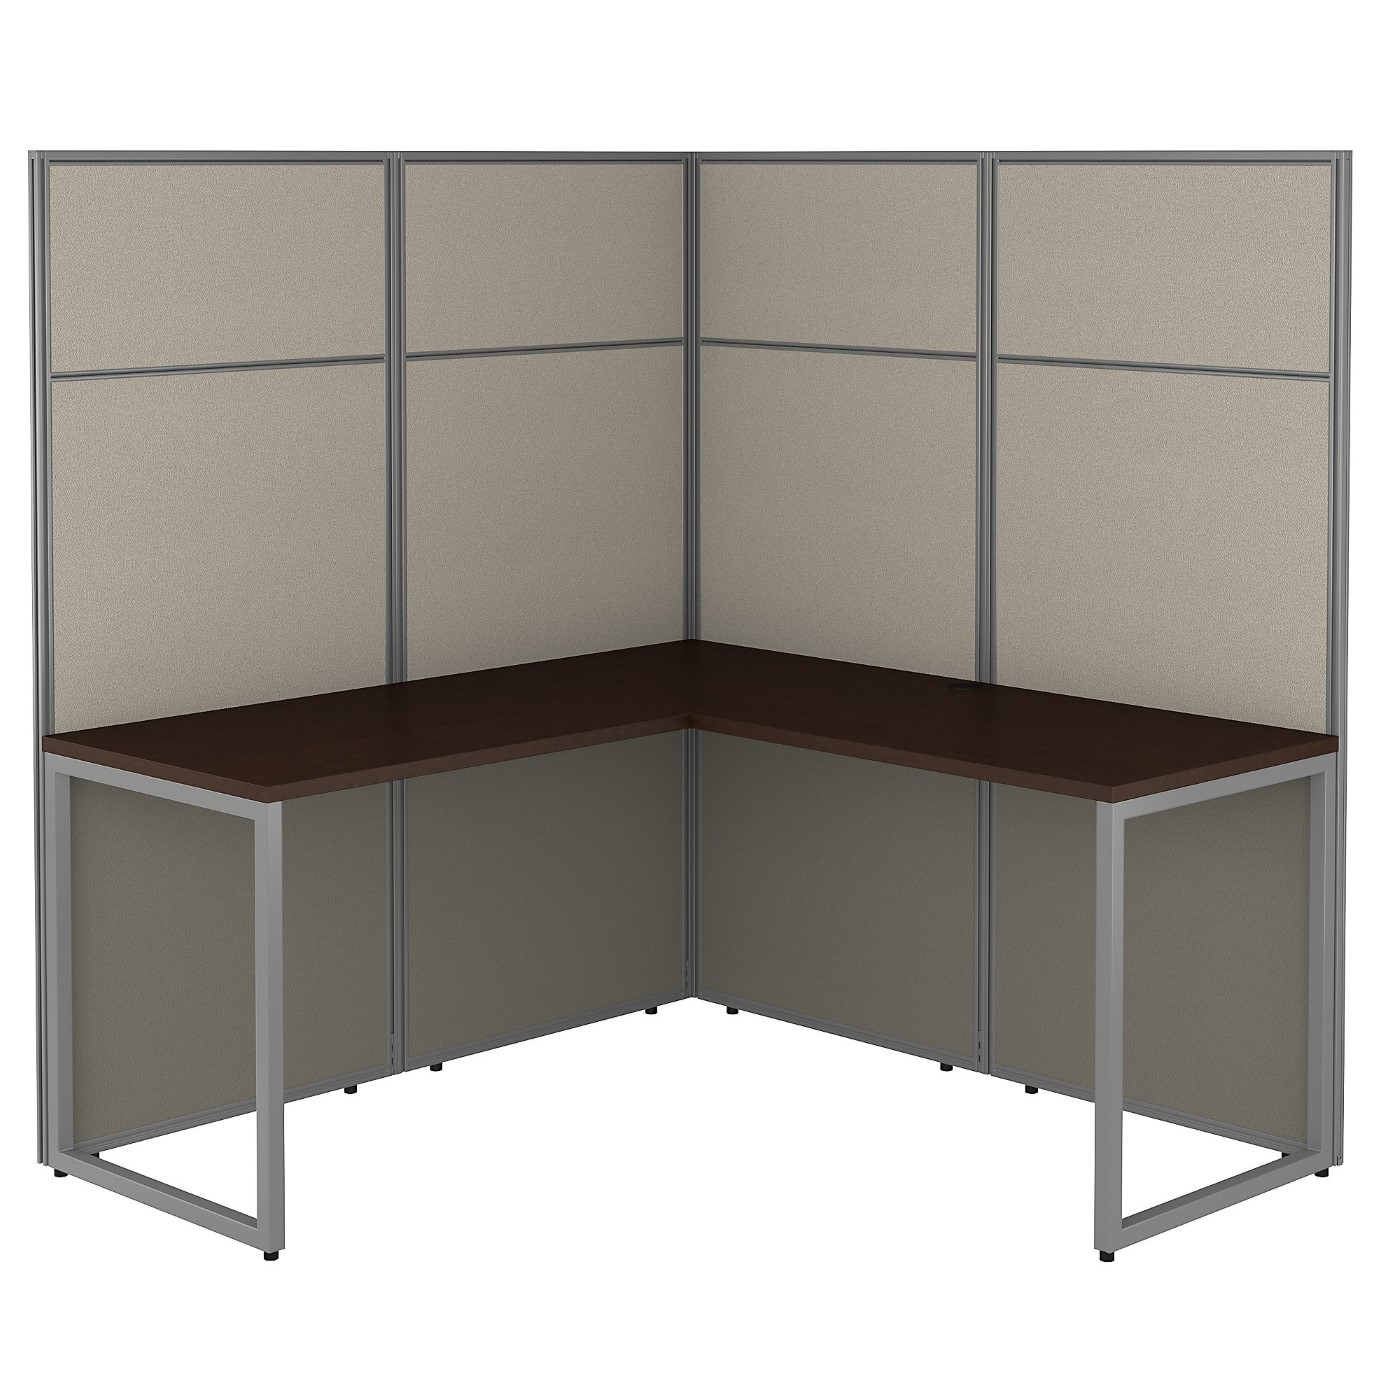 BUSH BUSINESS FURNITURE EASY OFFICE 60W L SHAPED CUBICLE DESK WORKSTATION WITH 66H PANELS. FREE SHIPPING 30H x 72L x 72W.  SALE DEDUCT 10% MORE ENTER '10percent' IN COUPON CODE BOX WHILE CHECKING OUT. ENDS 5-31-20.